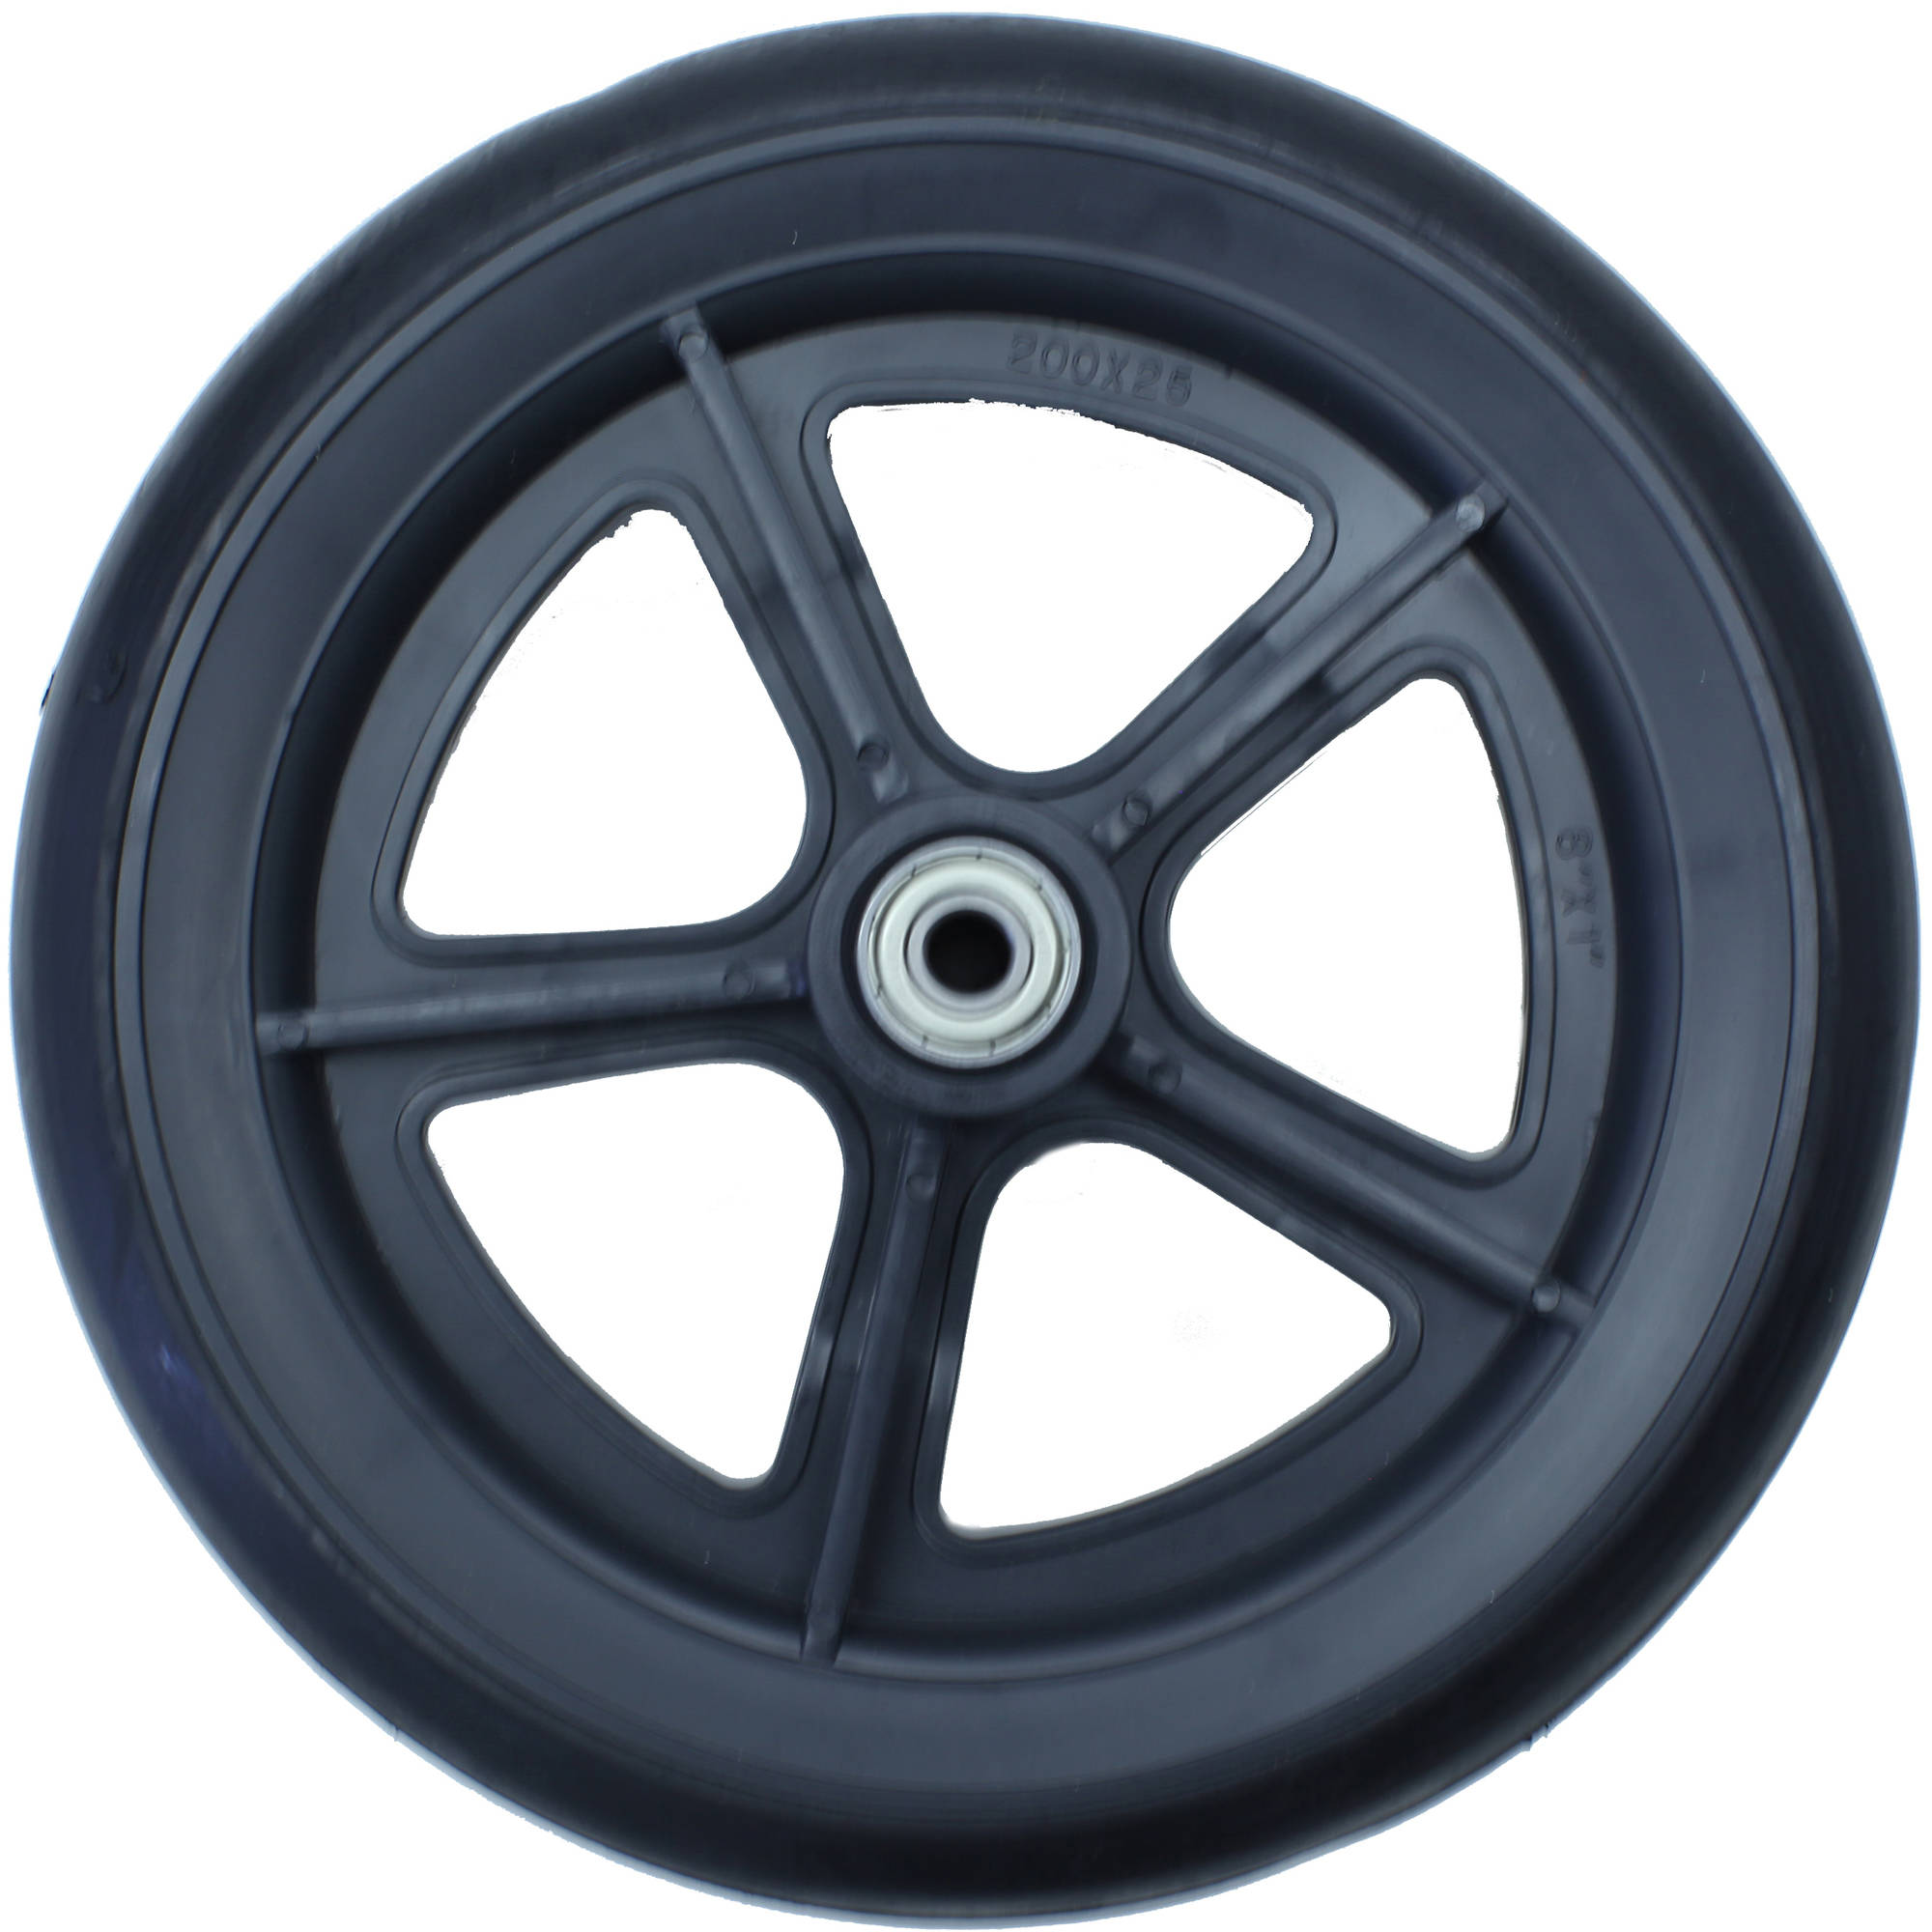 "Karman 8"" Wheelchair Casters, Solid Black with 7/16 Bearing"